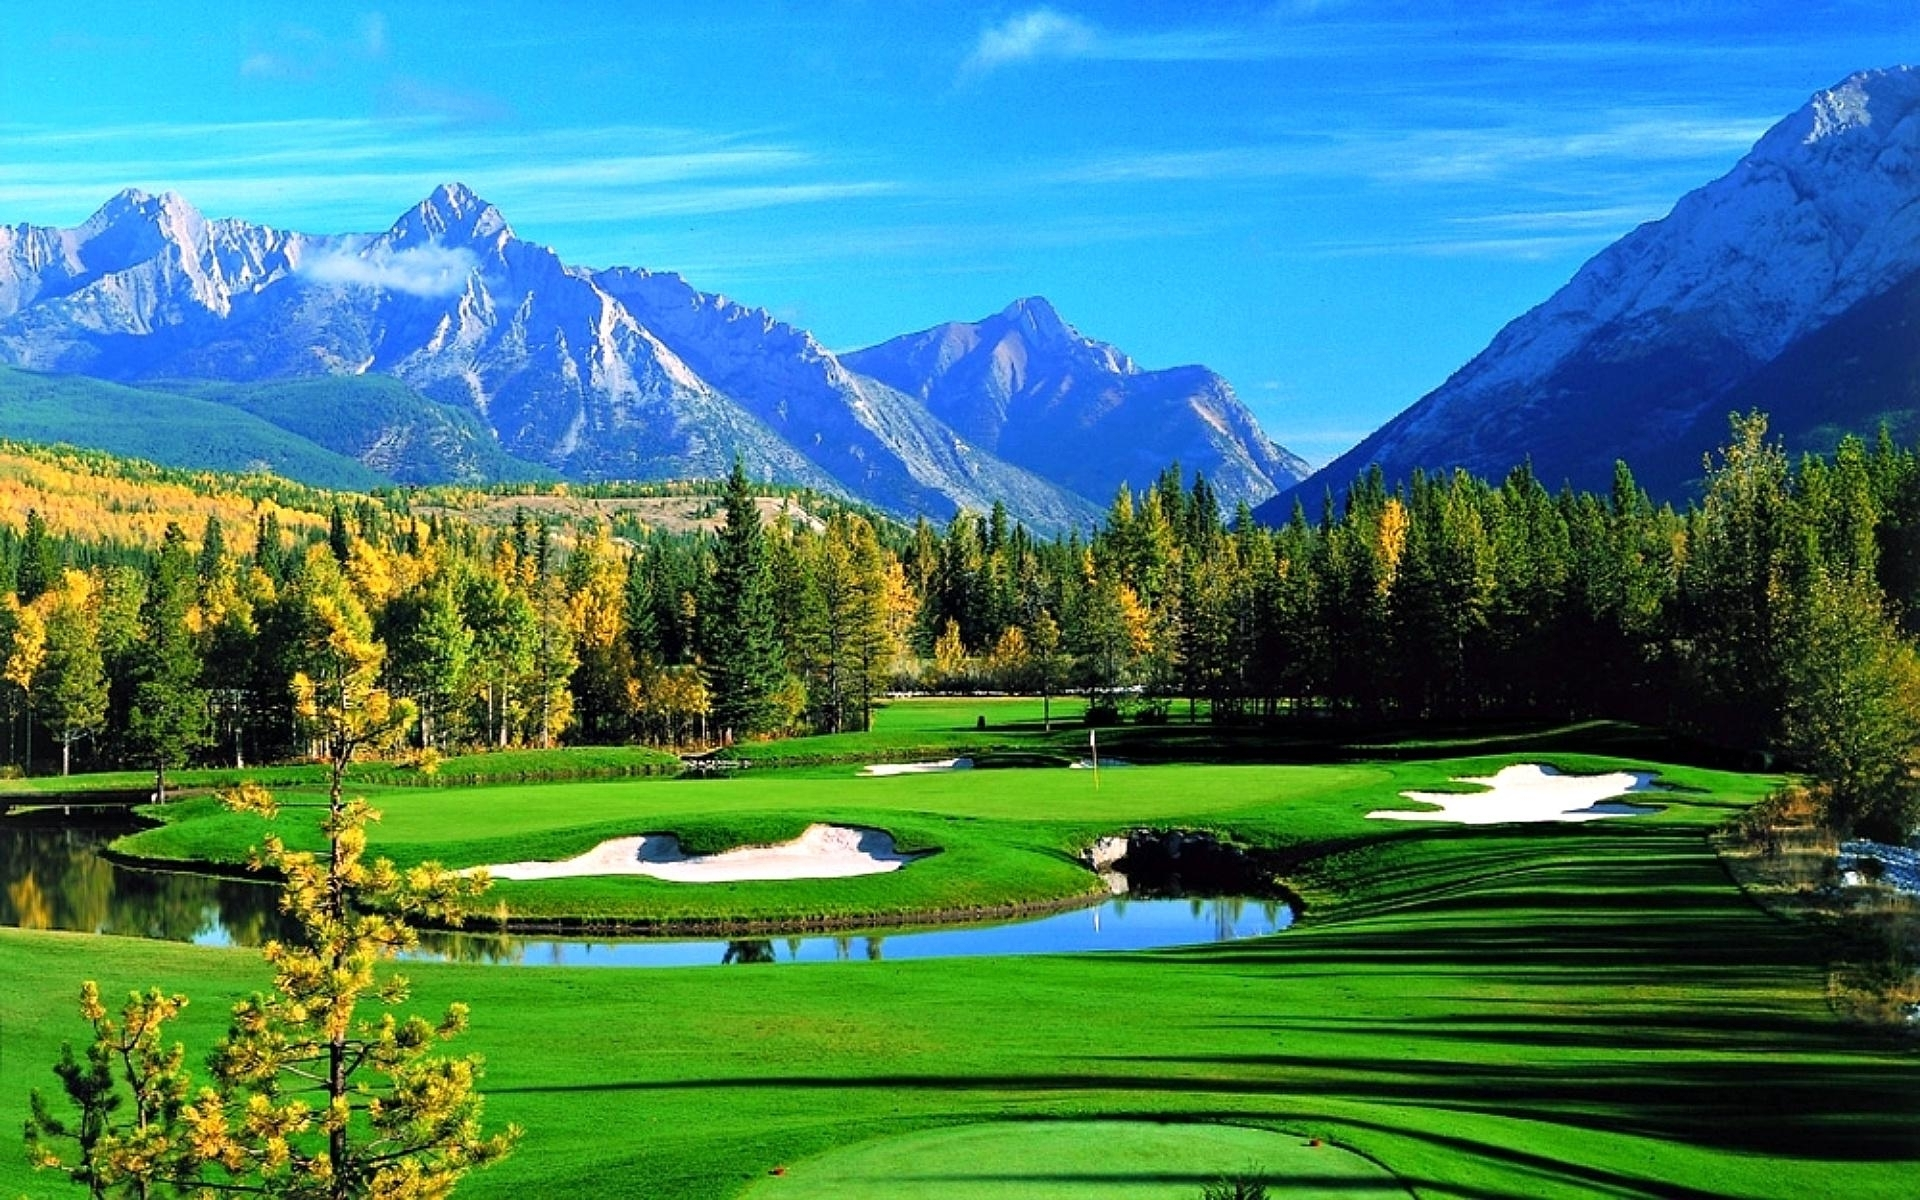 nature & landscape golf course wallpapers (desktop, phone, tablet